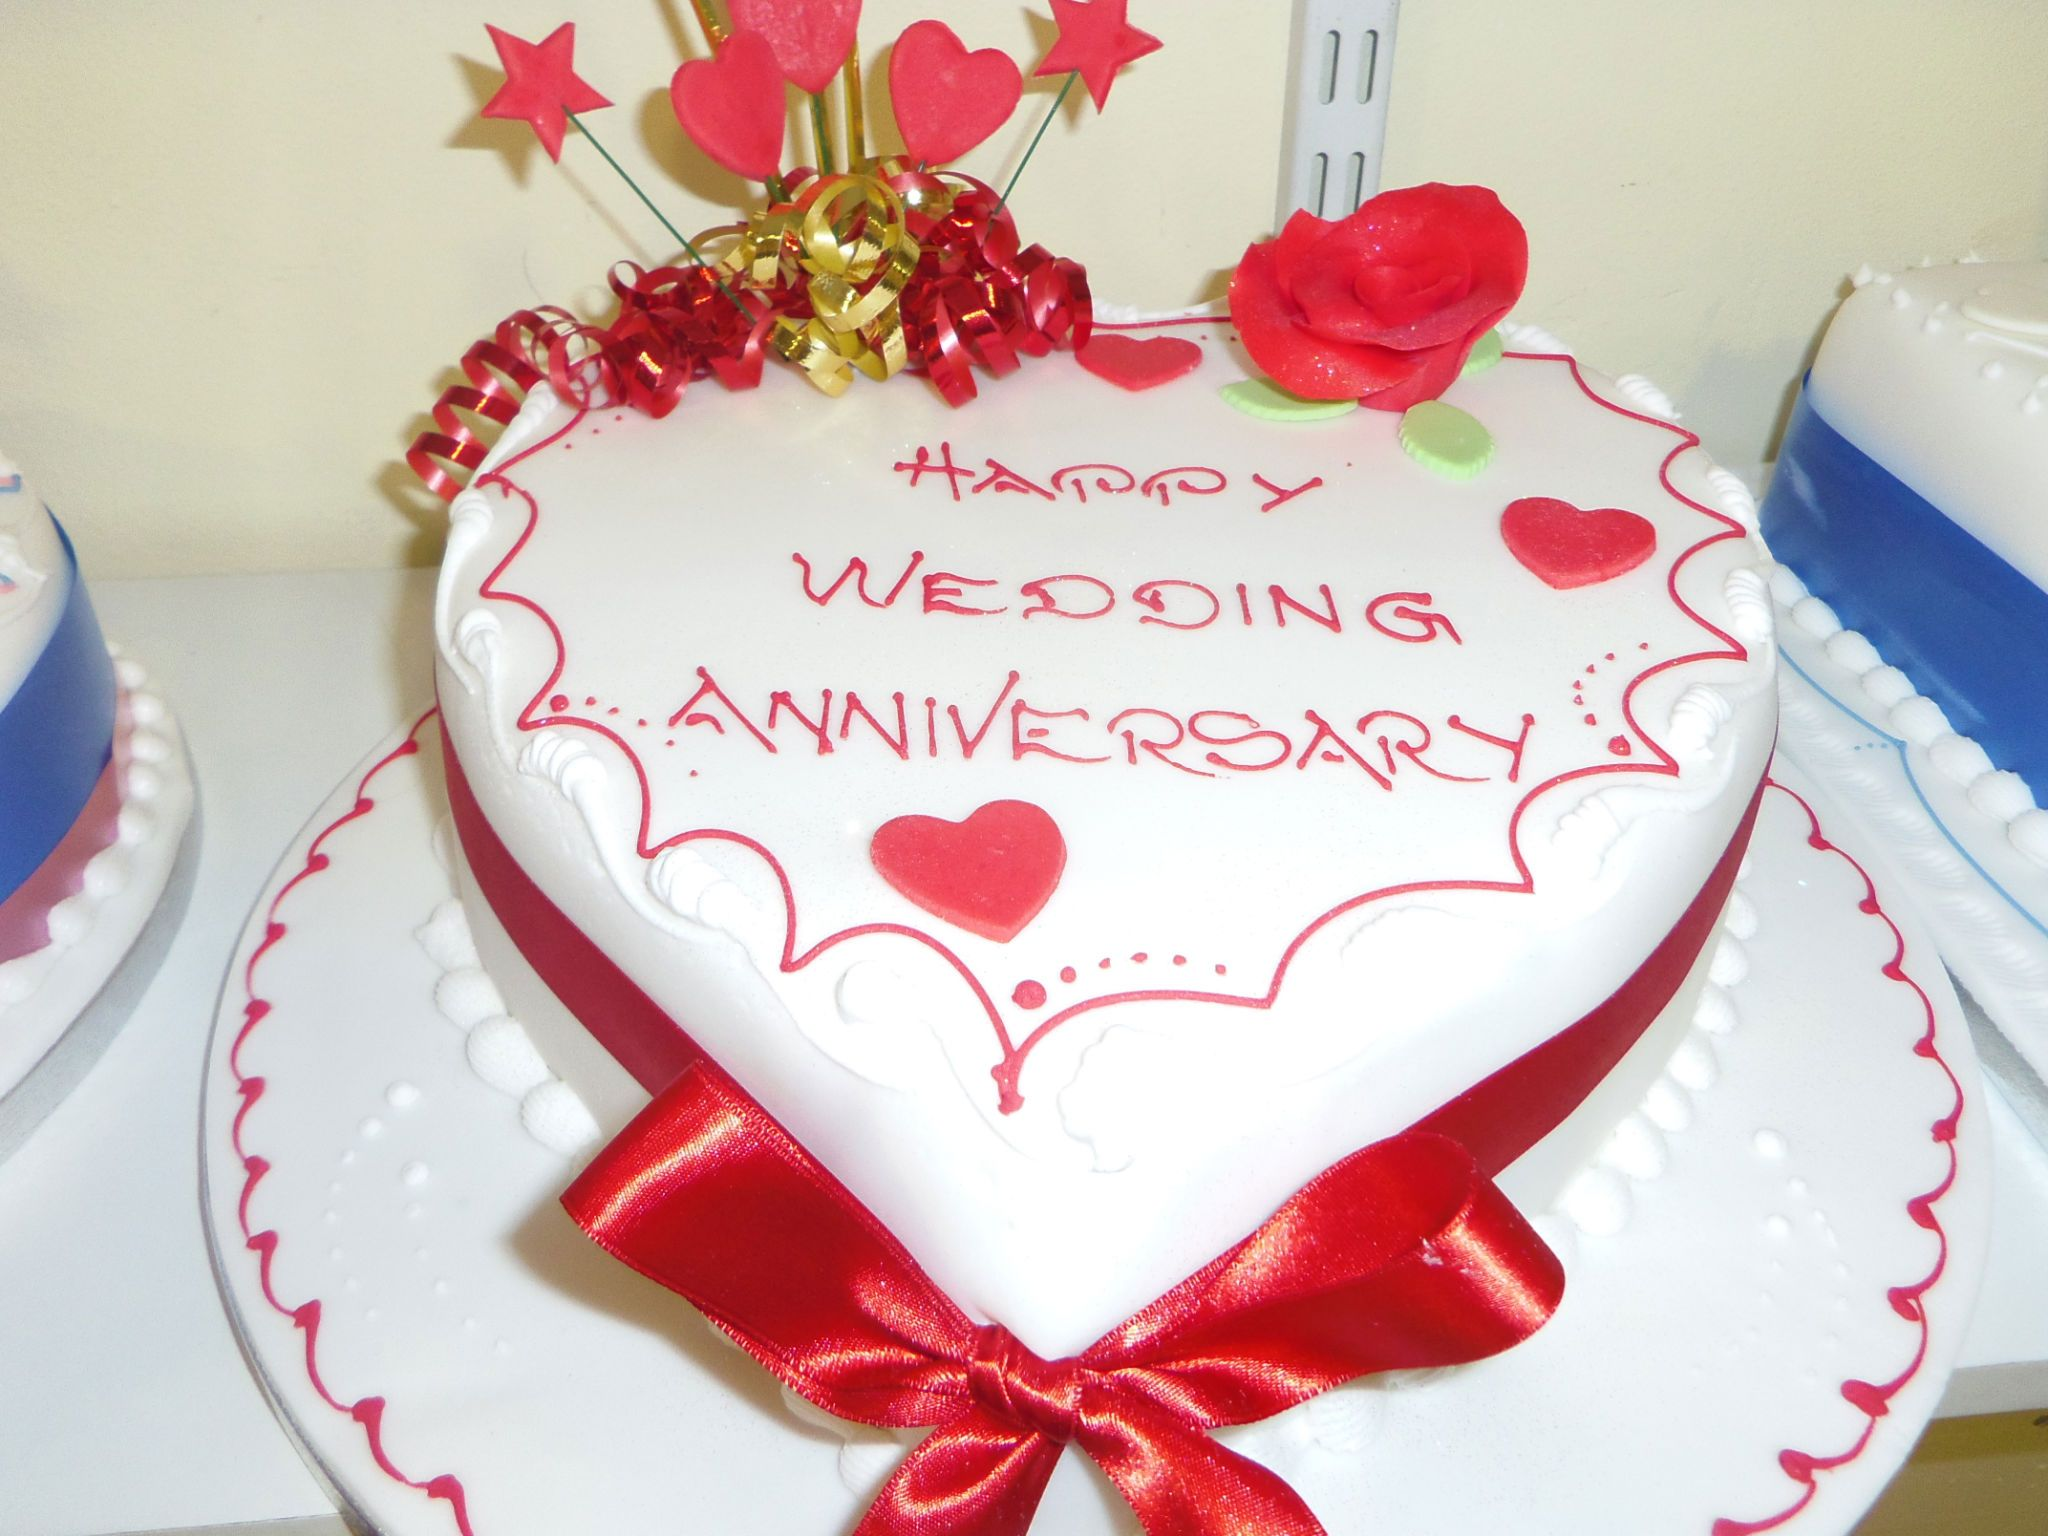 happy wedding anniversary cakes | happy anniversary | pinterest